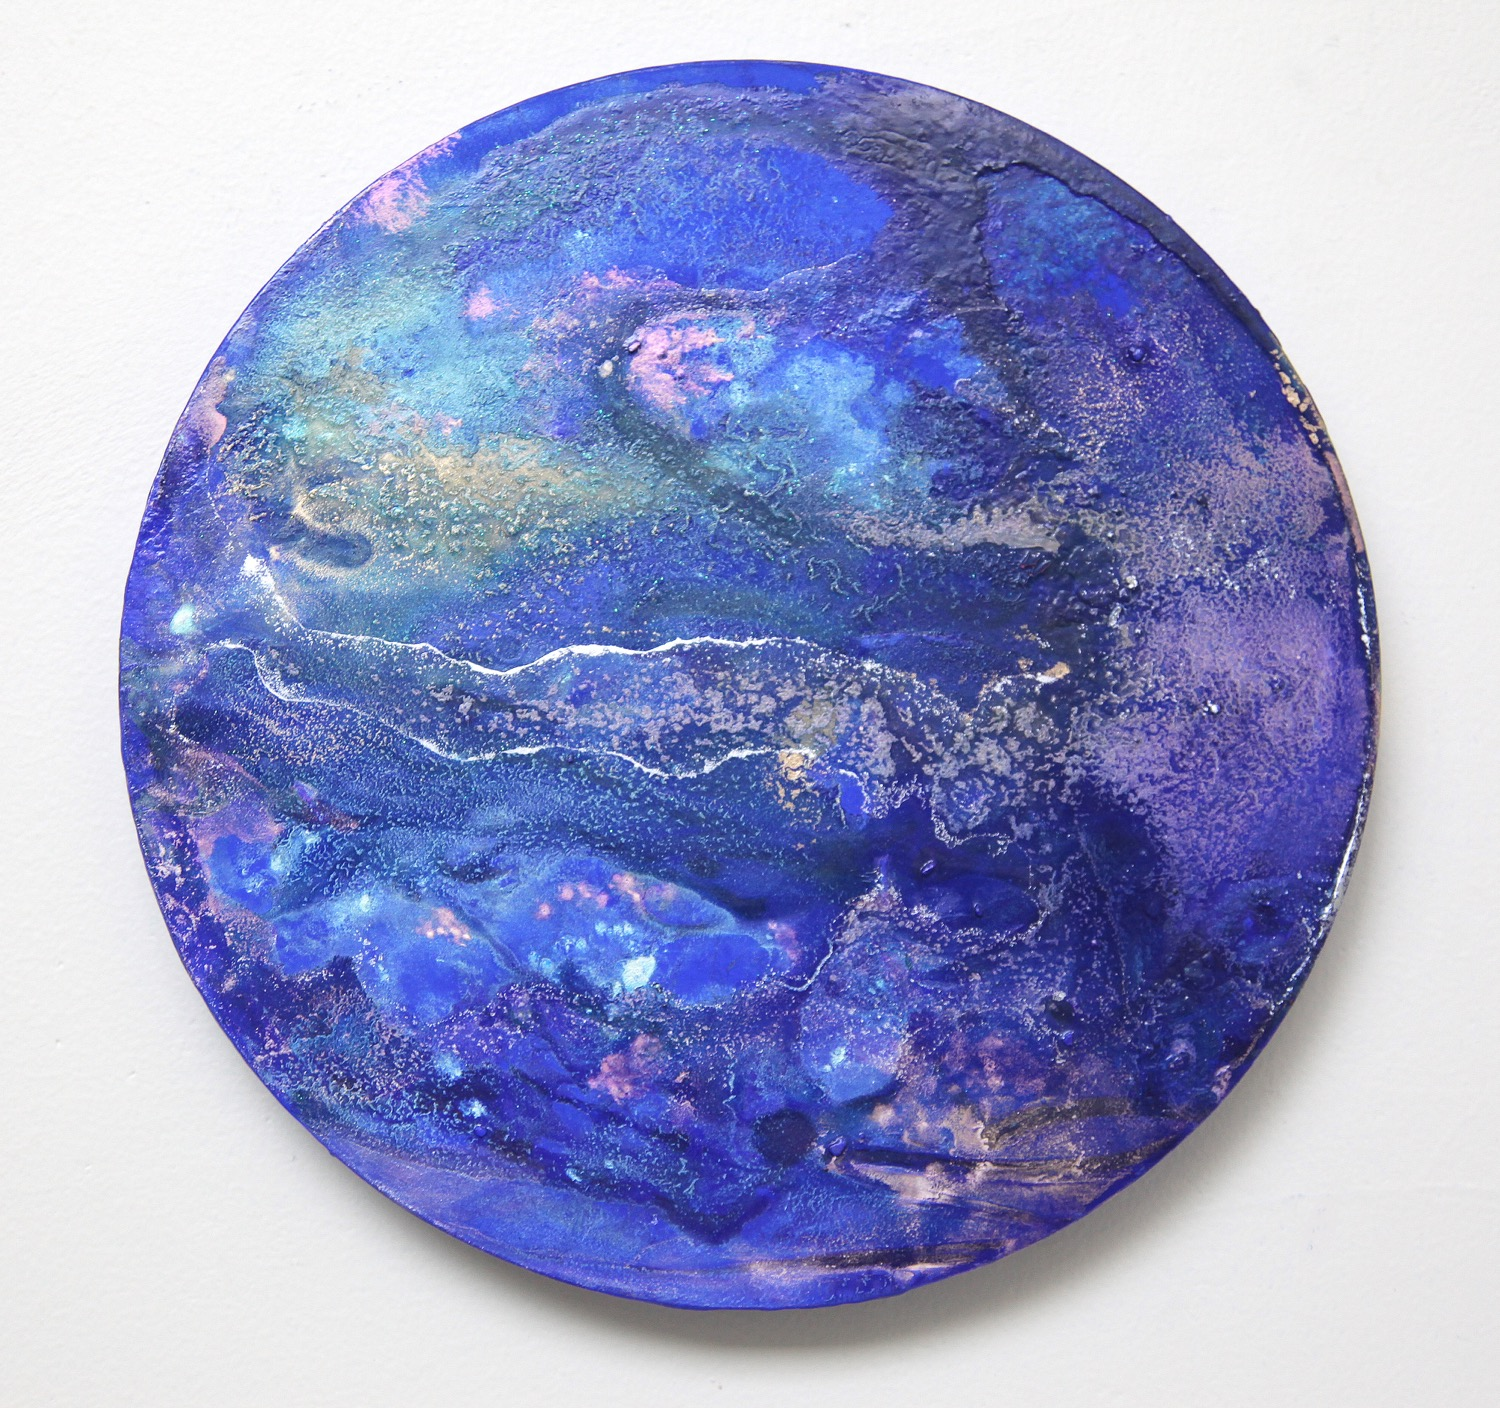 T19  2015  Acrylic and metal powder on board  27.2cm diameter